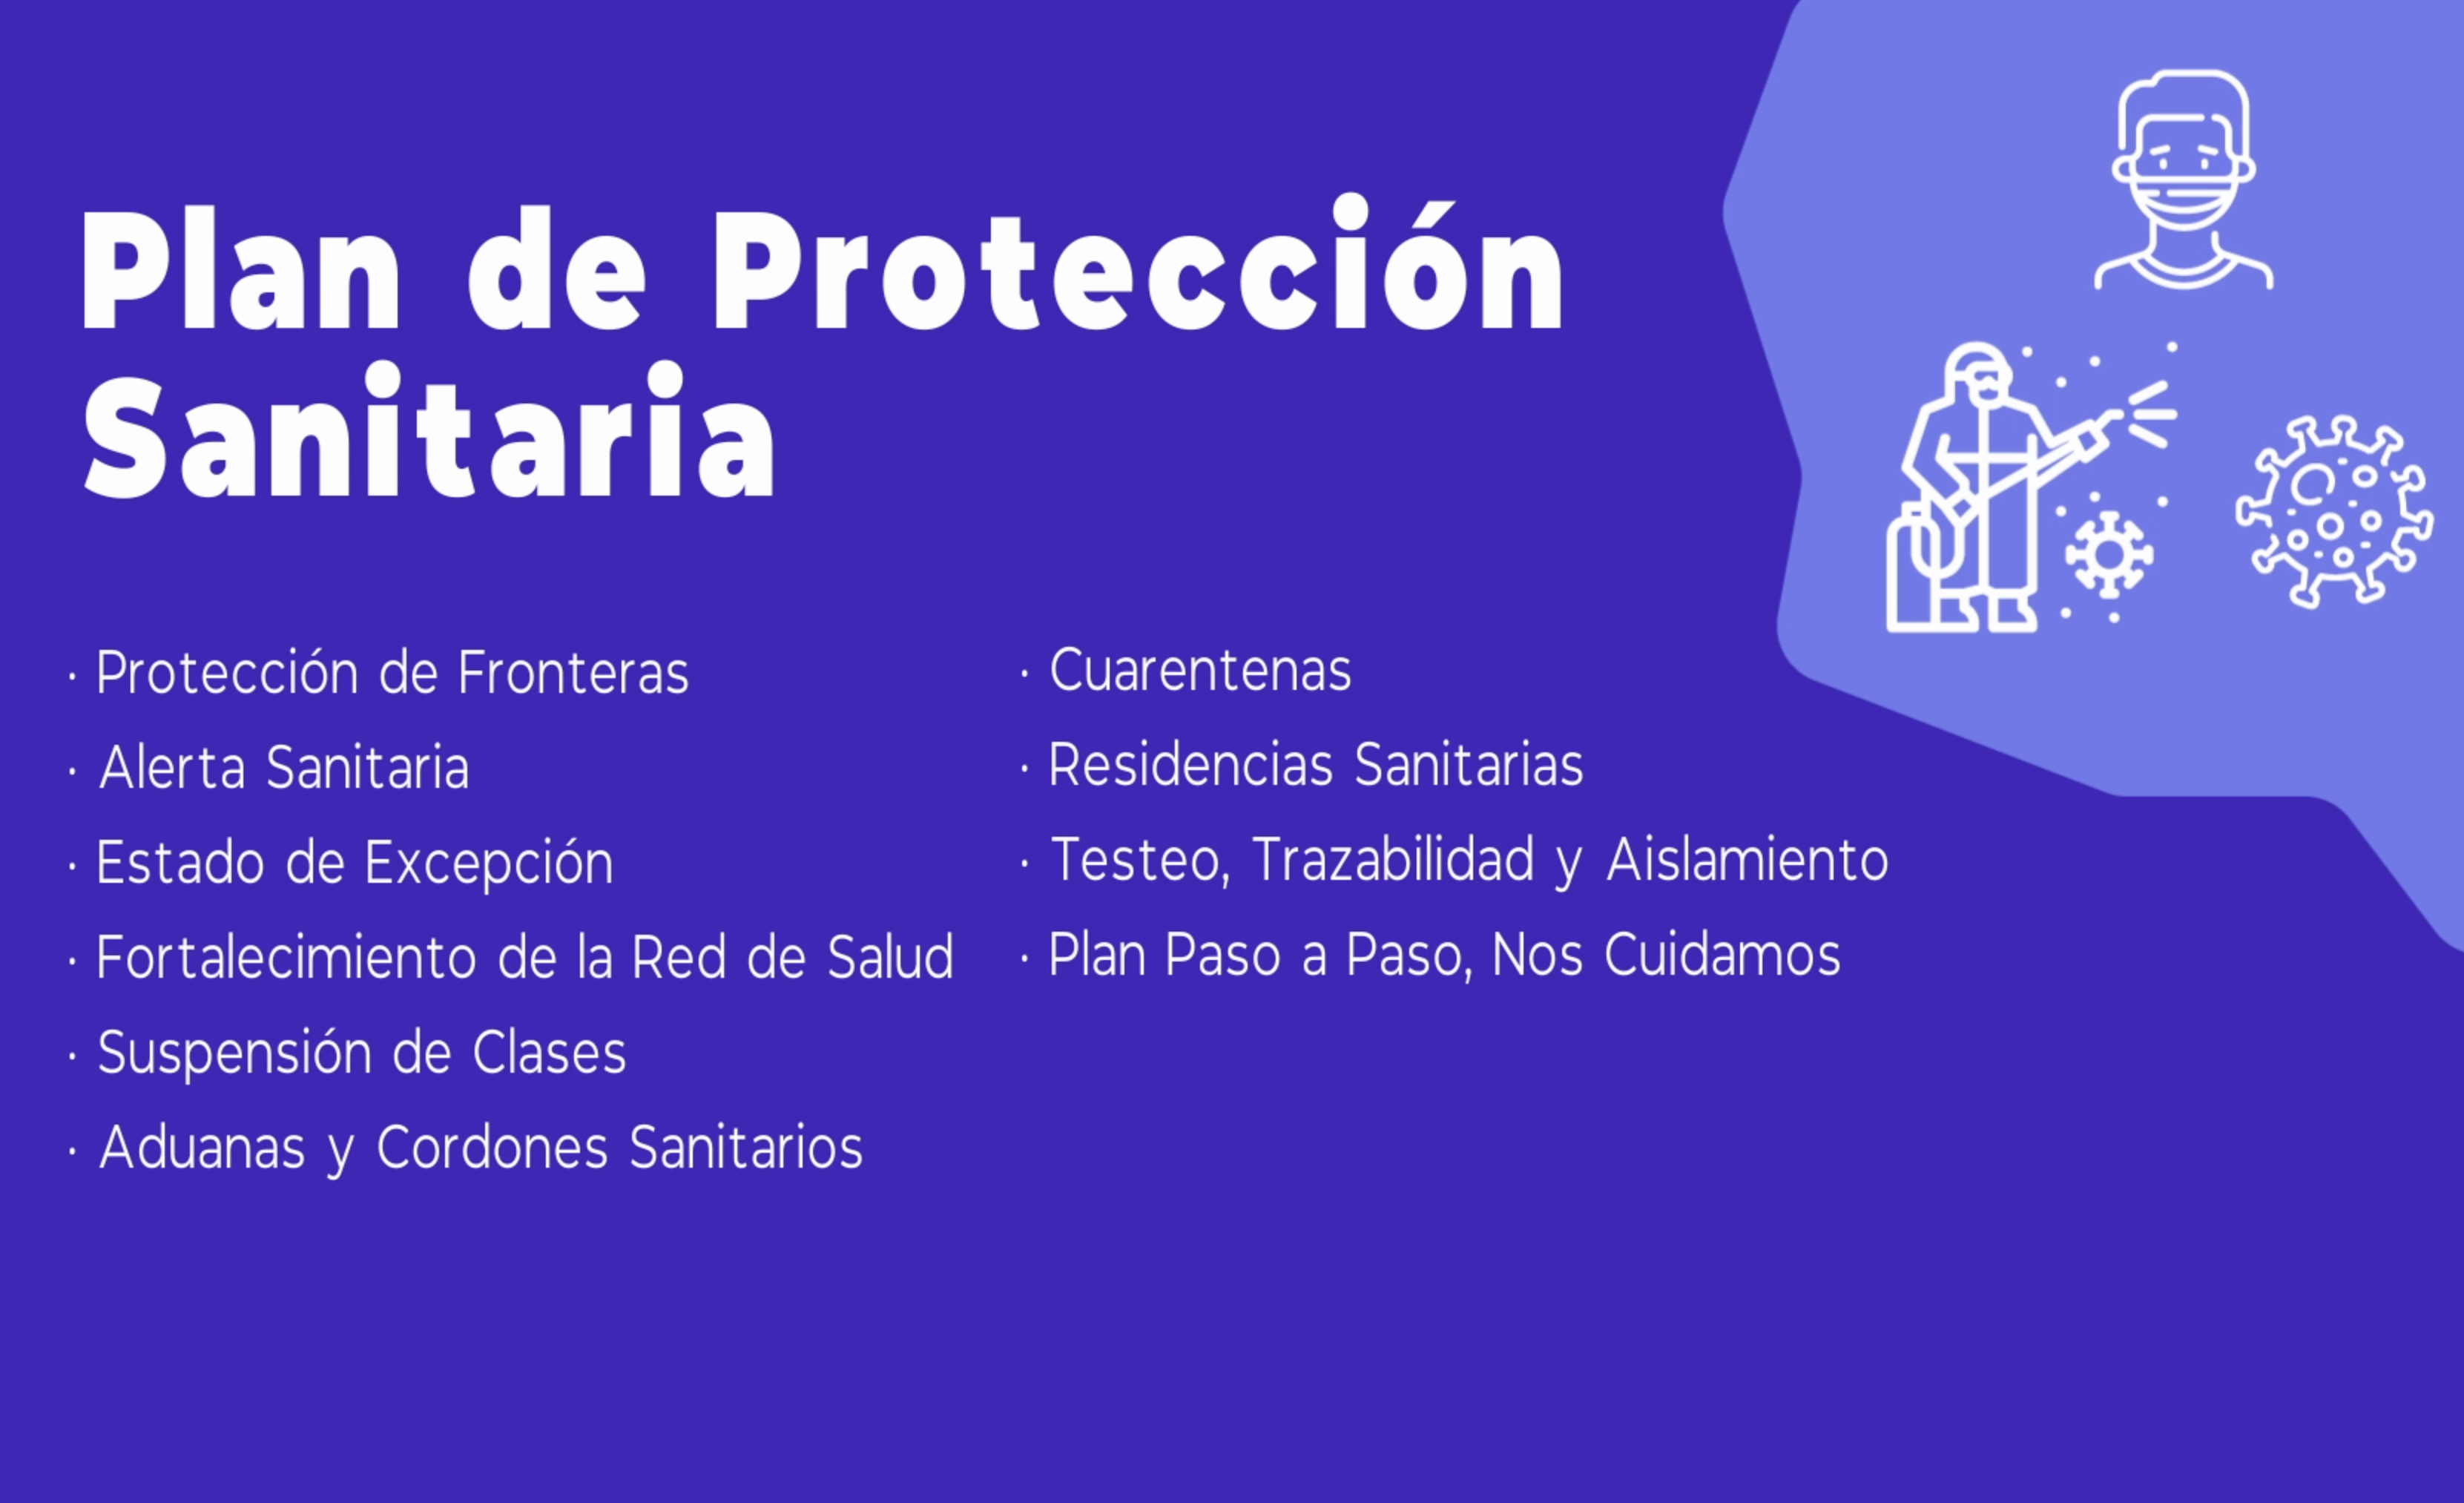 Plan de proteccion sanitaria